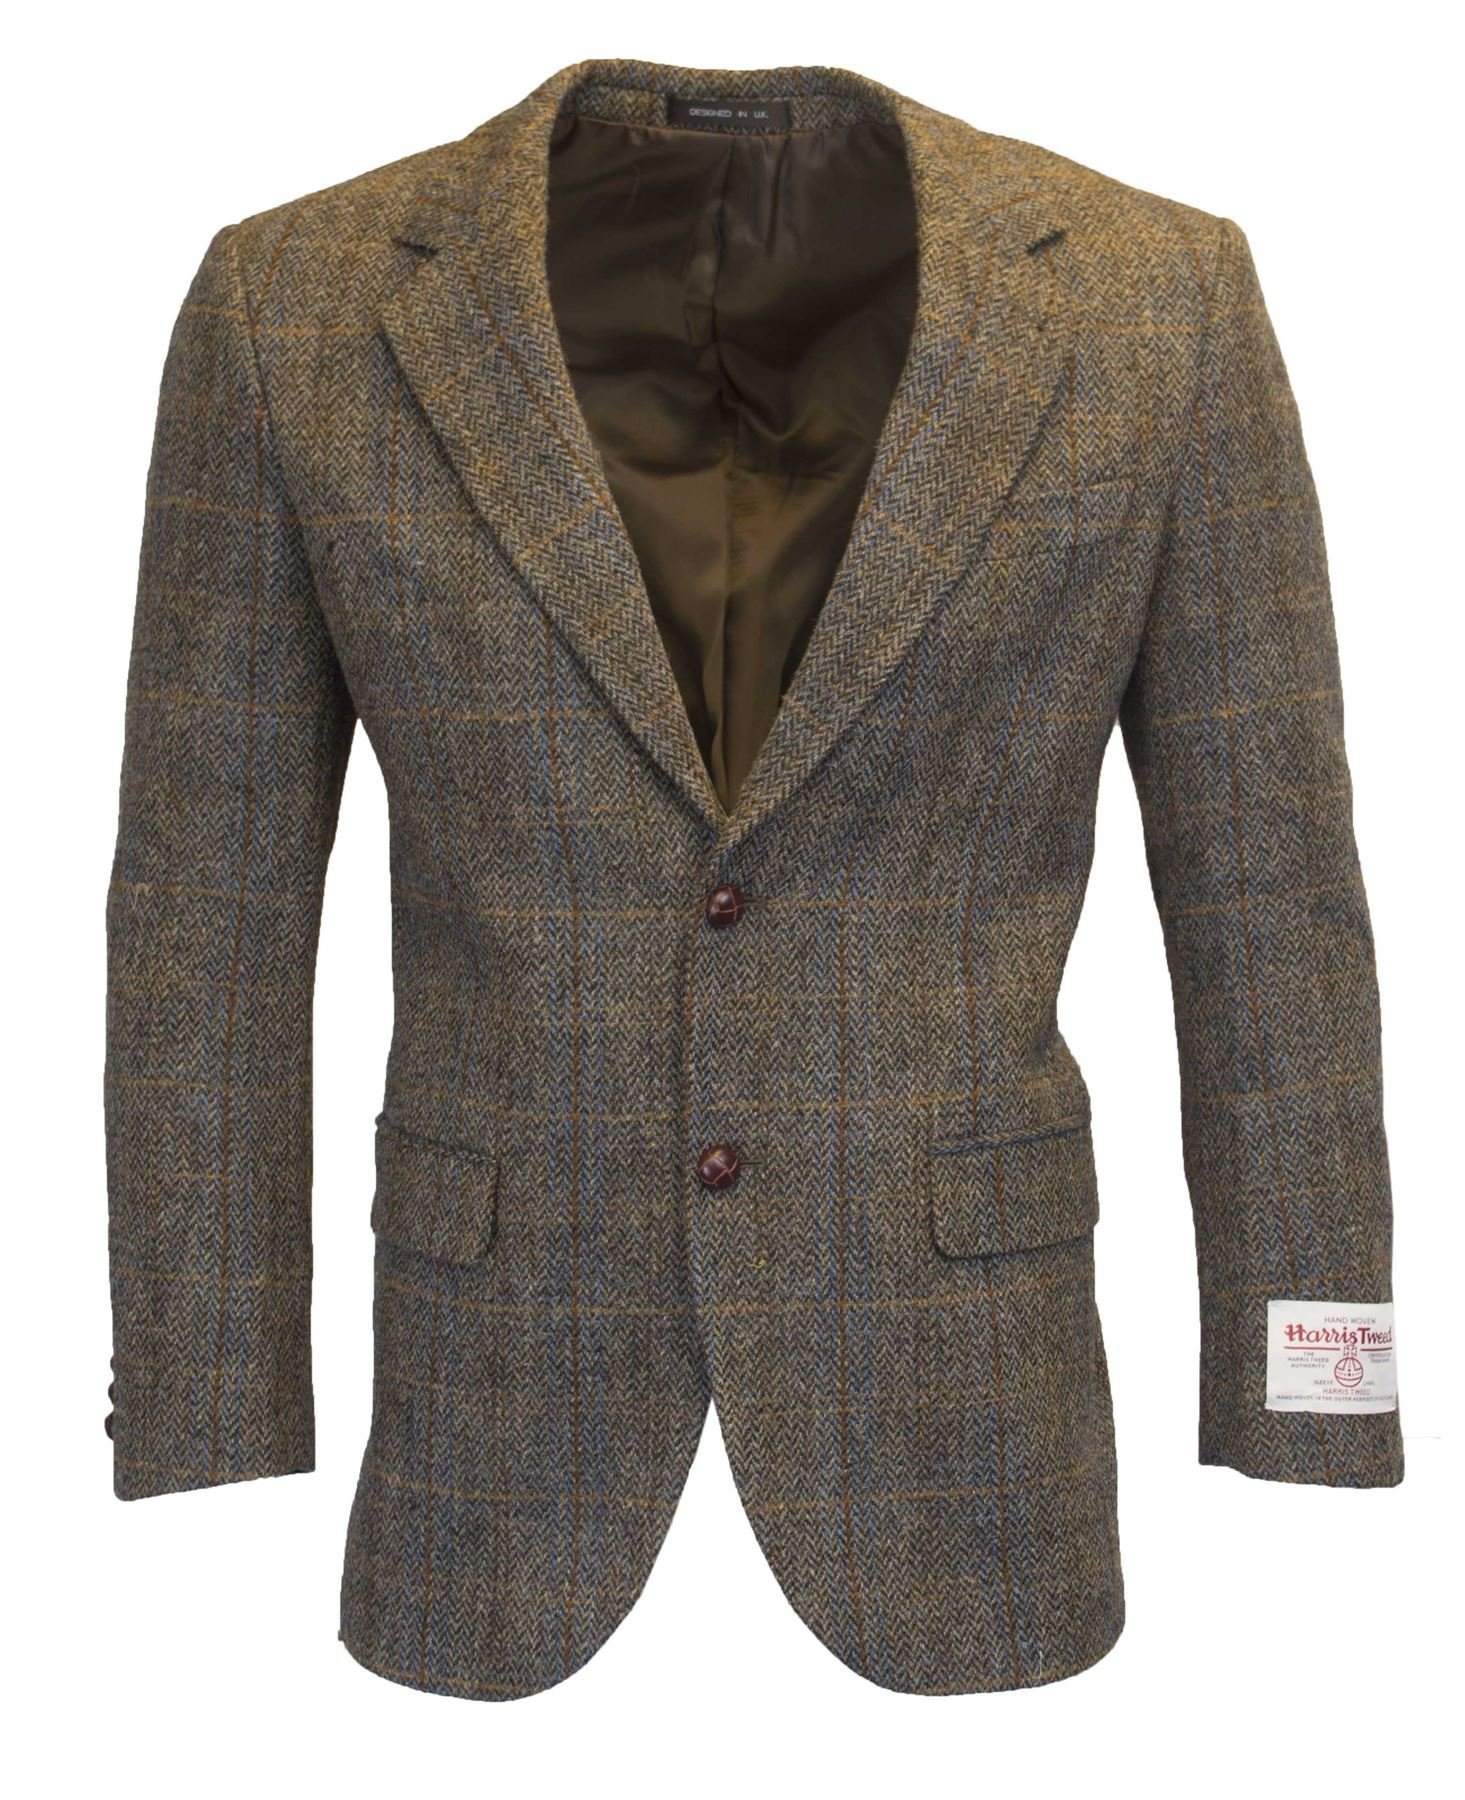 Walker and Hawkes Mens Classic Scottish Harris Tweed Herringbone Overcheck Country Blazer Jacket - Clinton Brown - 48 by Walker and Hawkes